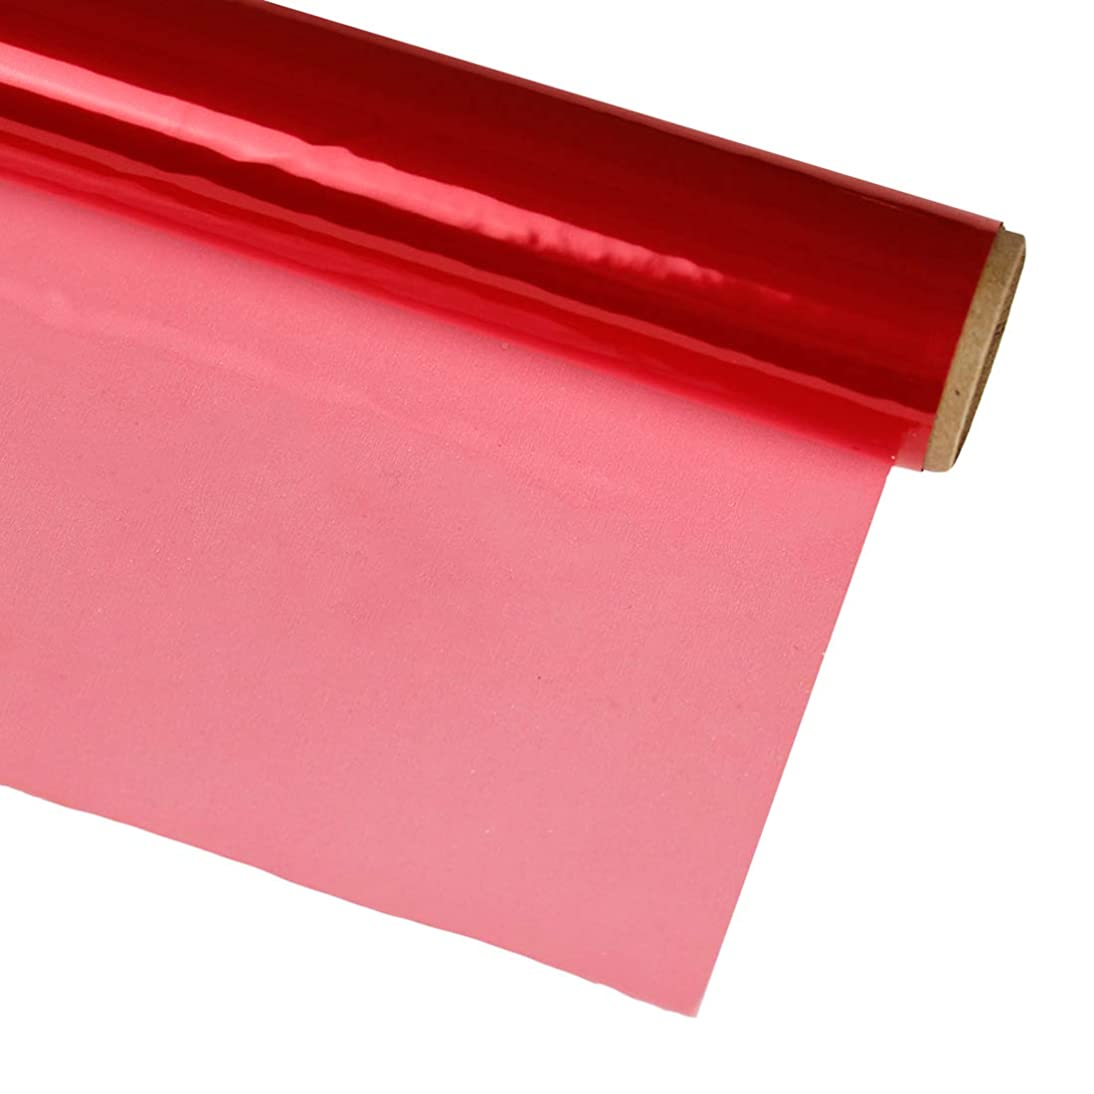 Hygloss Products Cellophane Roll – Cellophane Wrap for Crafts, Gifts, and Baskets 20 Inch x 5 Feet, Red